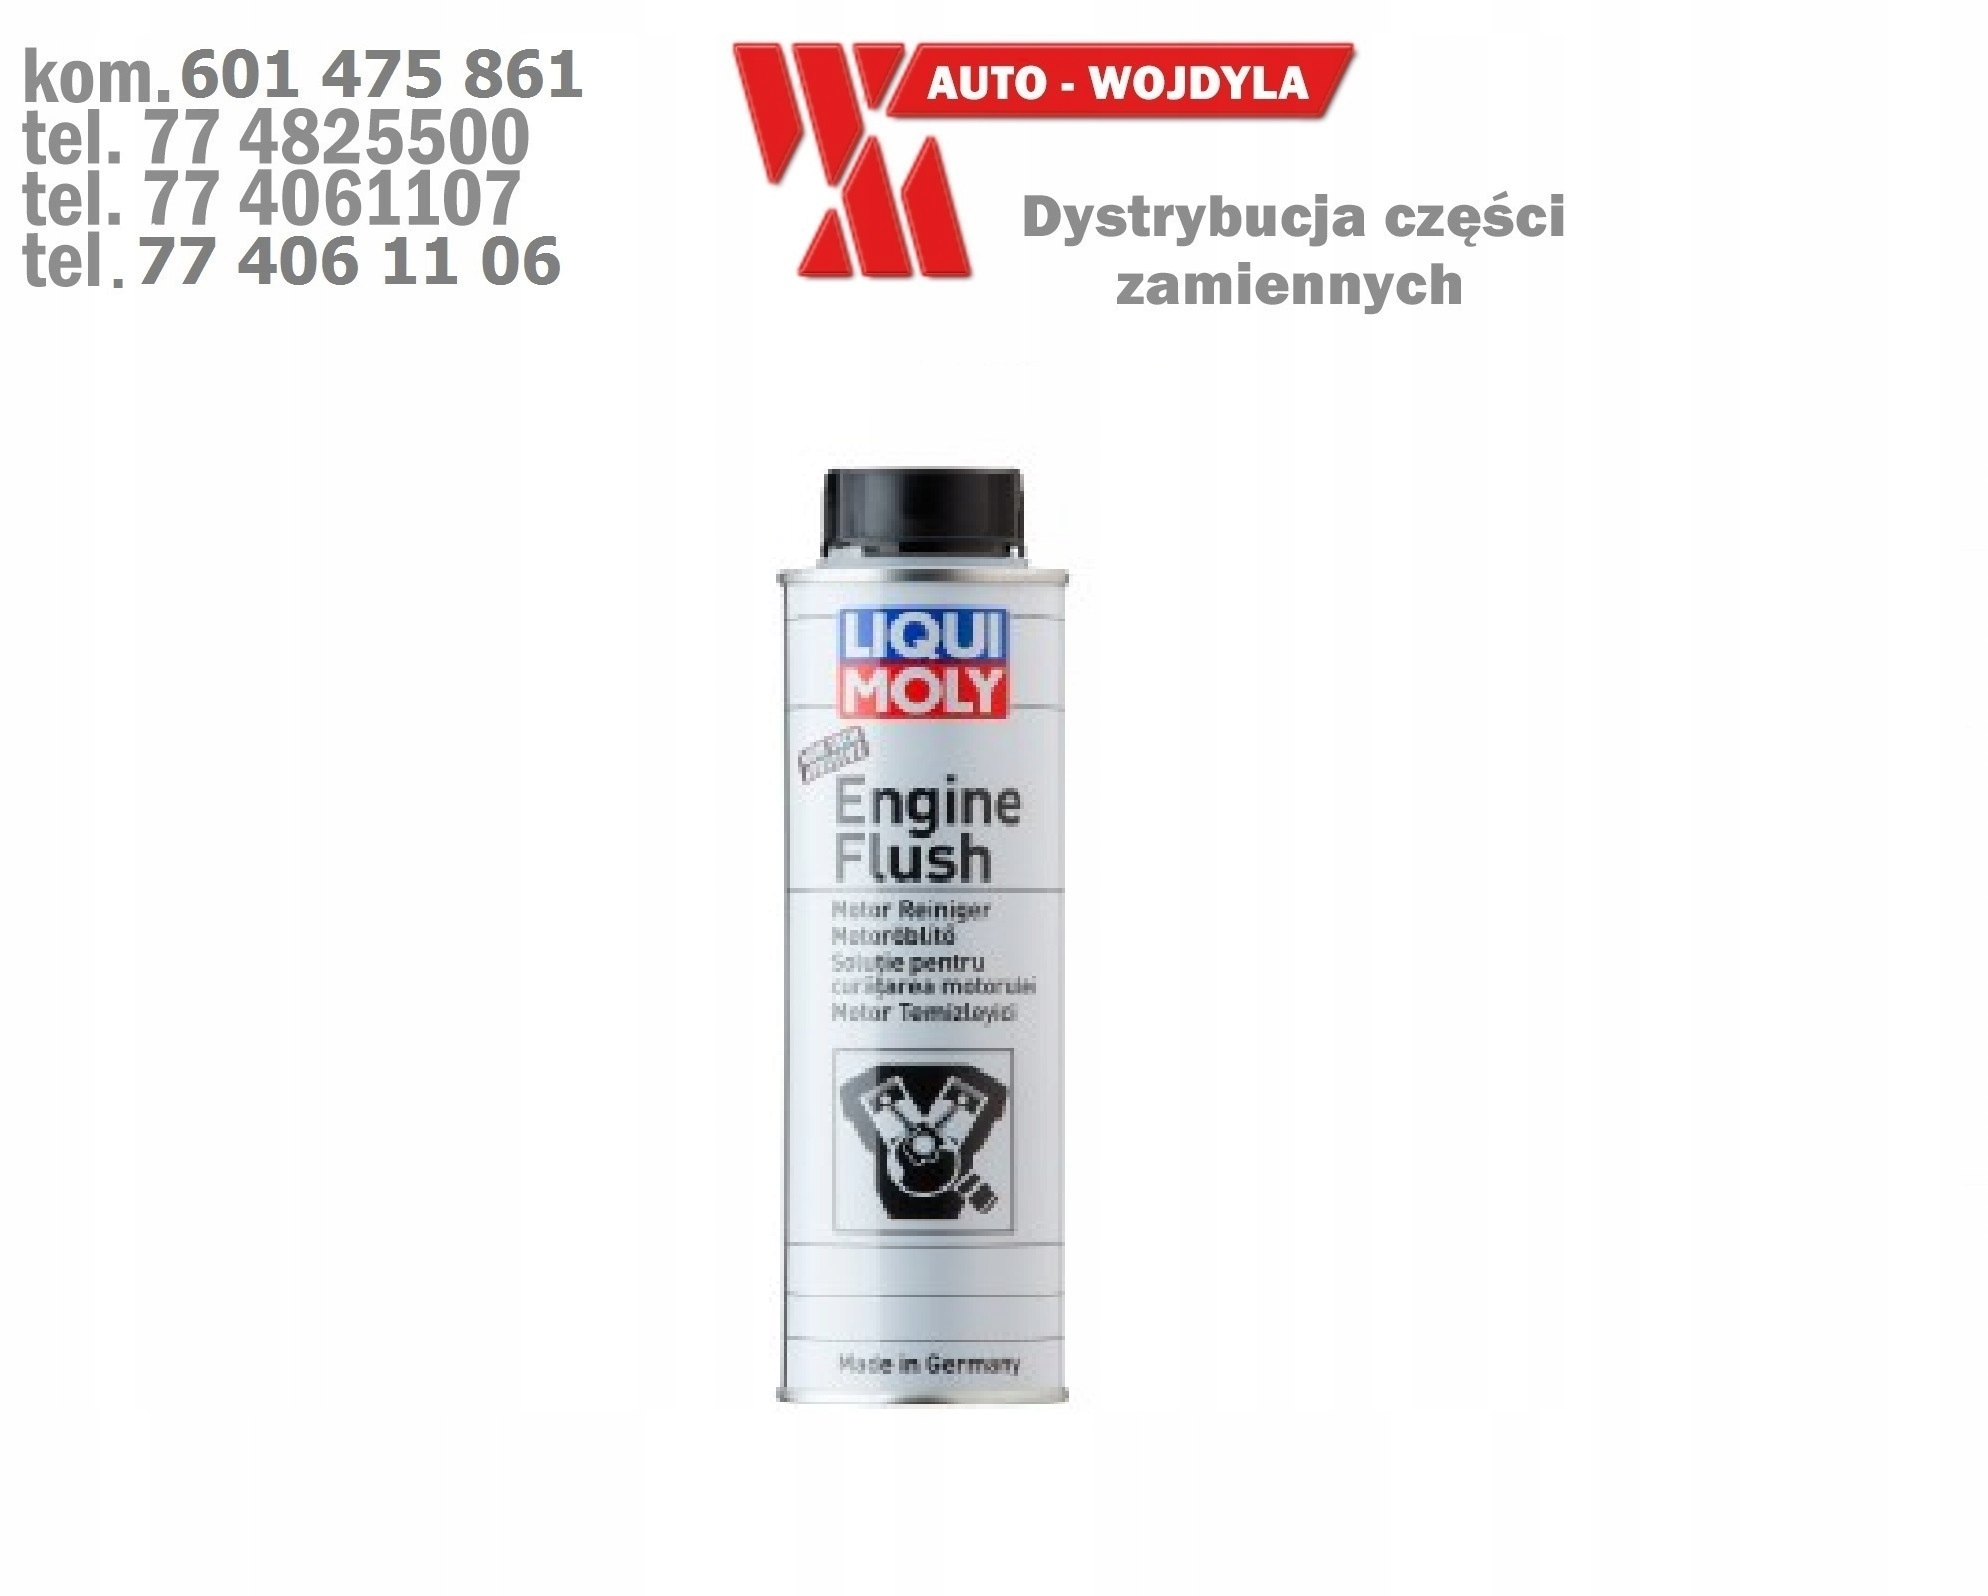 Engine Flush płukanka 300 ml L2640 Liqui Moly